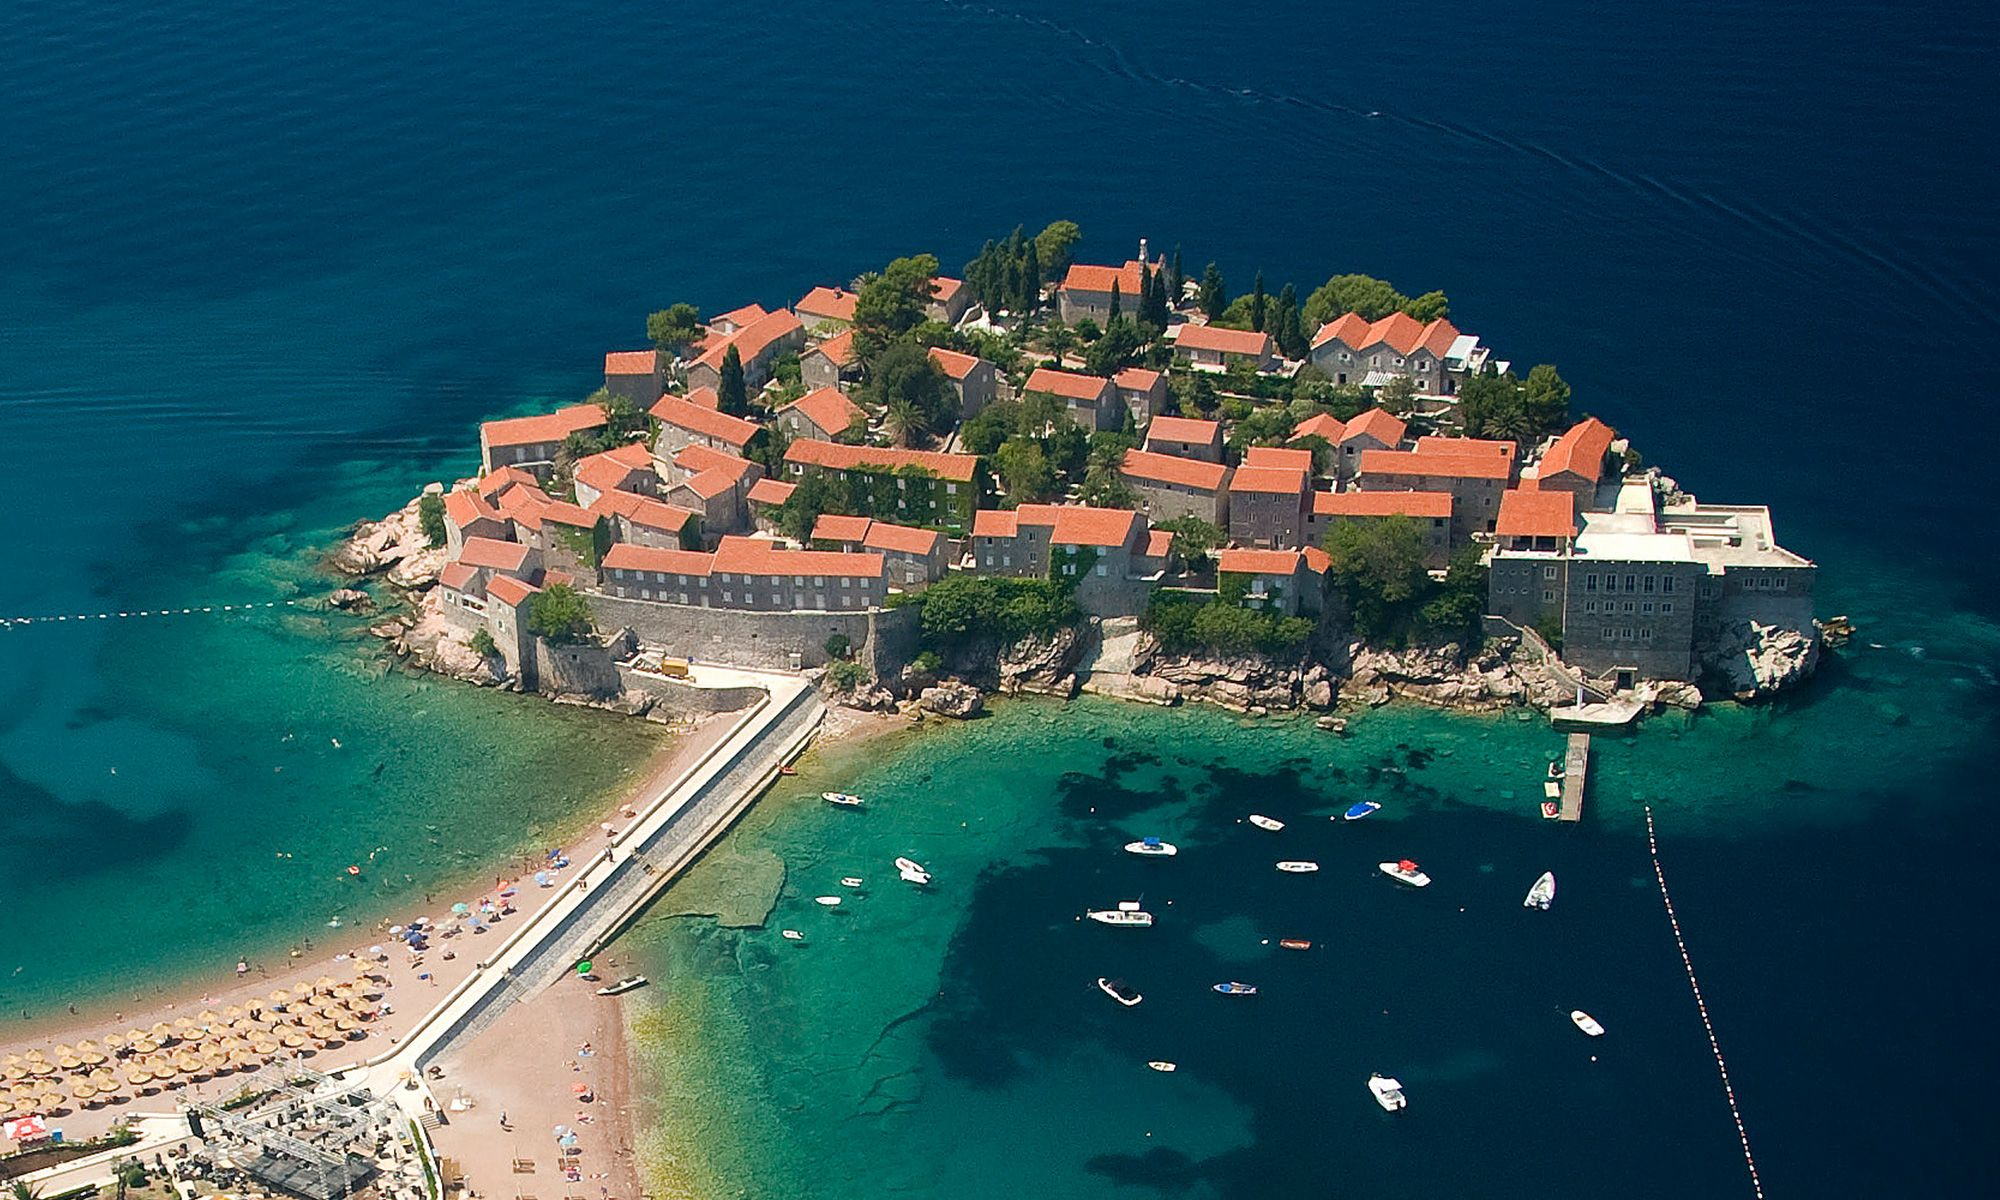 Beach on Sveti Stefan Included in 30 of The Most Stunning Beaches in Europe List